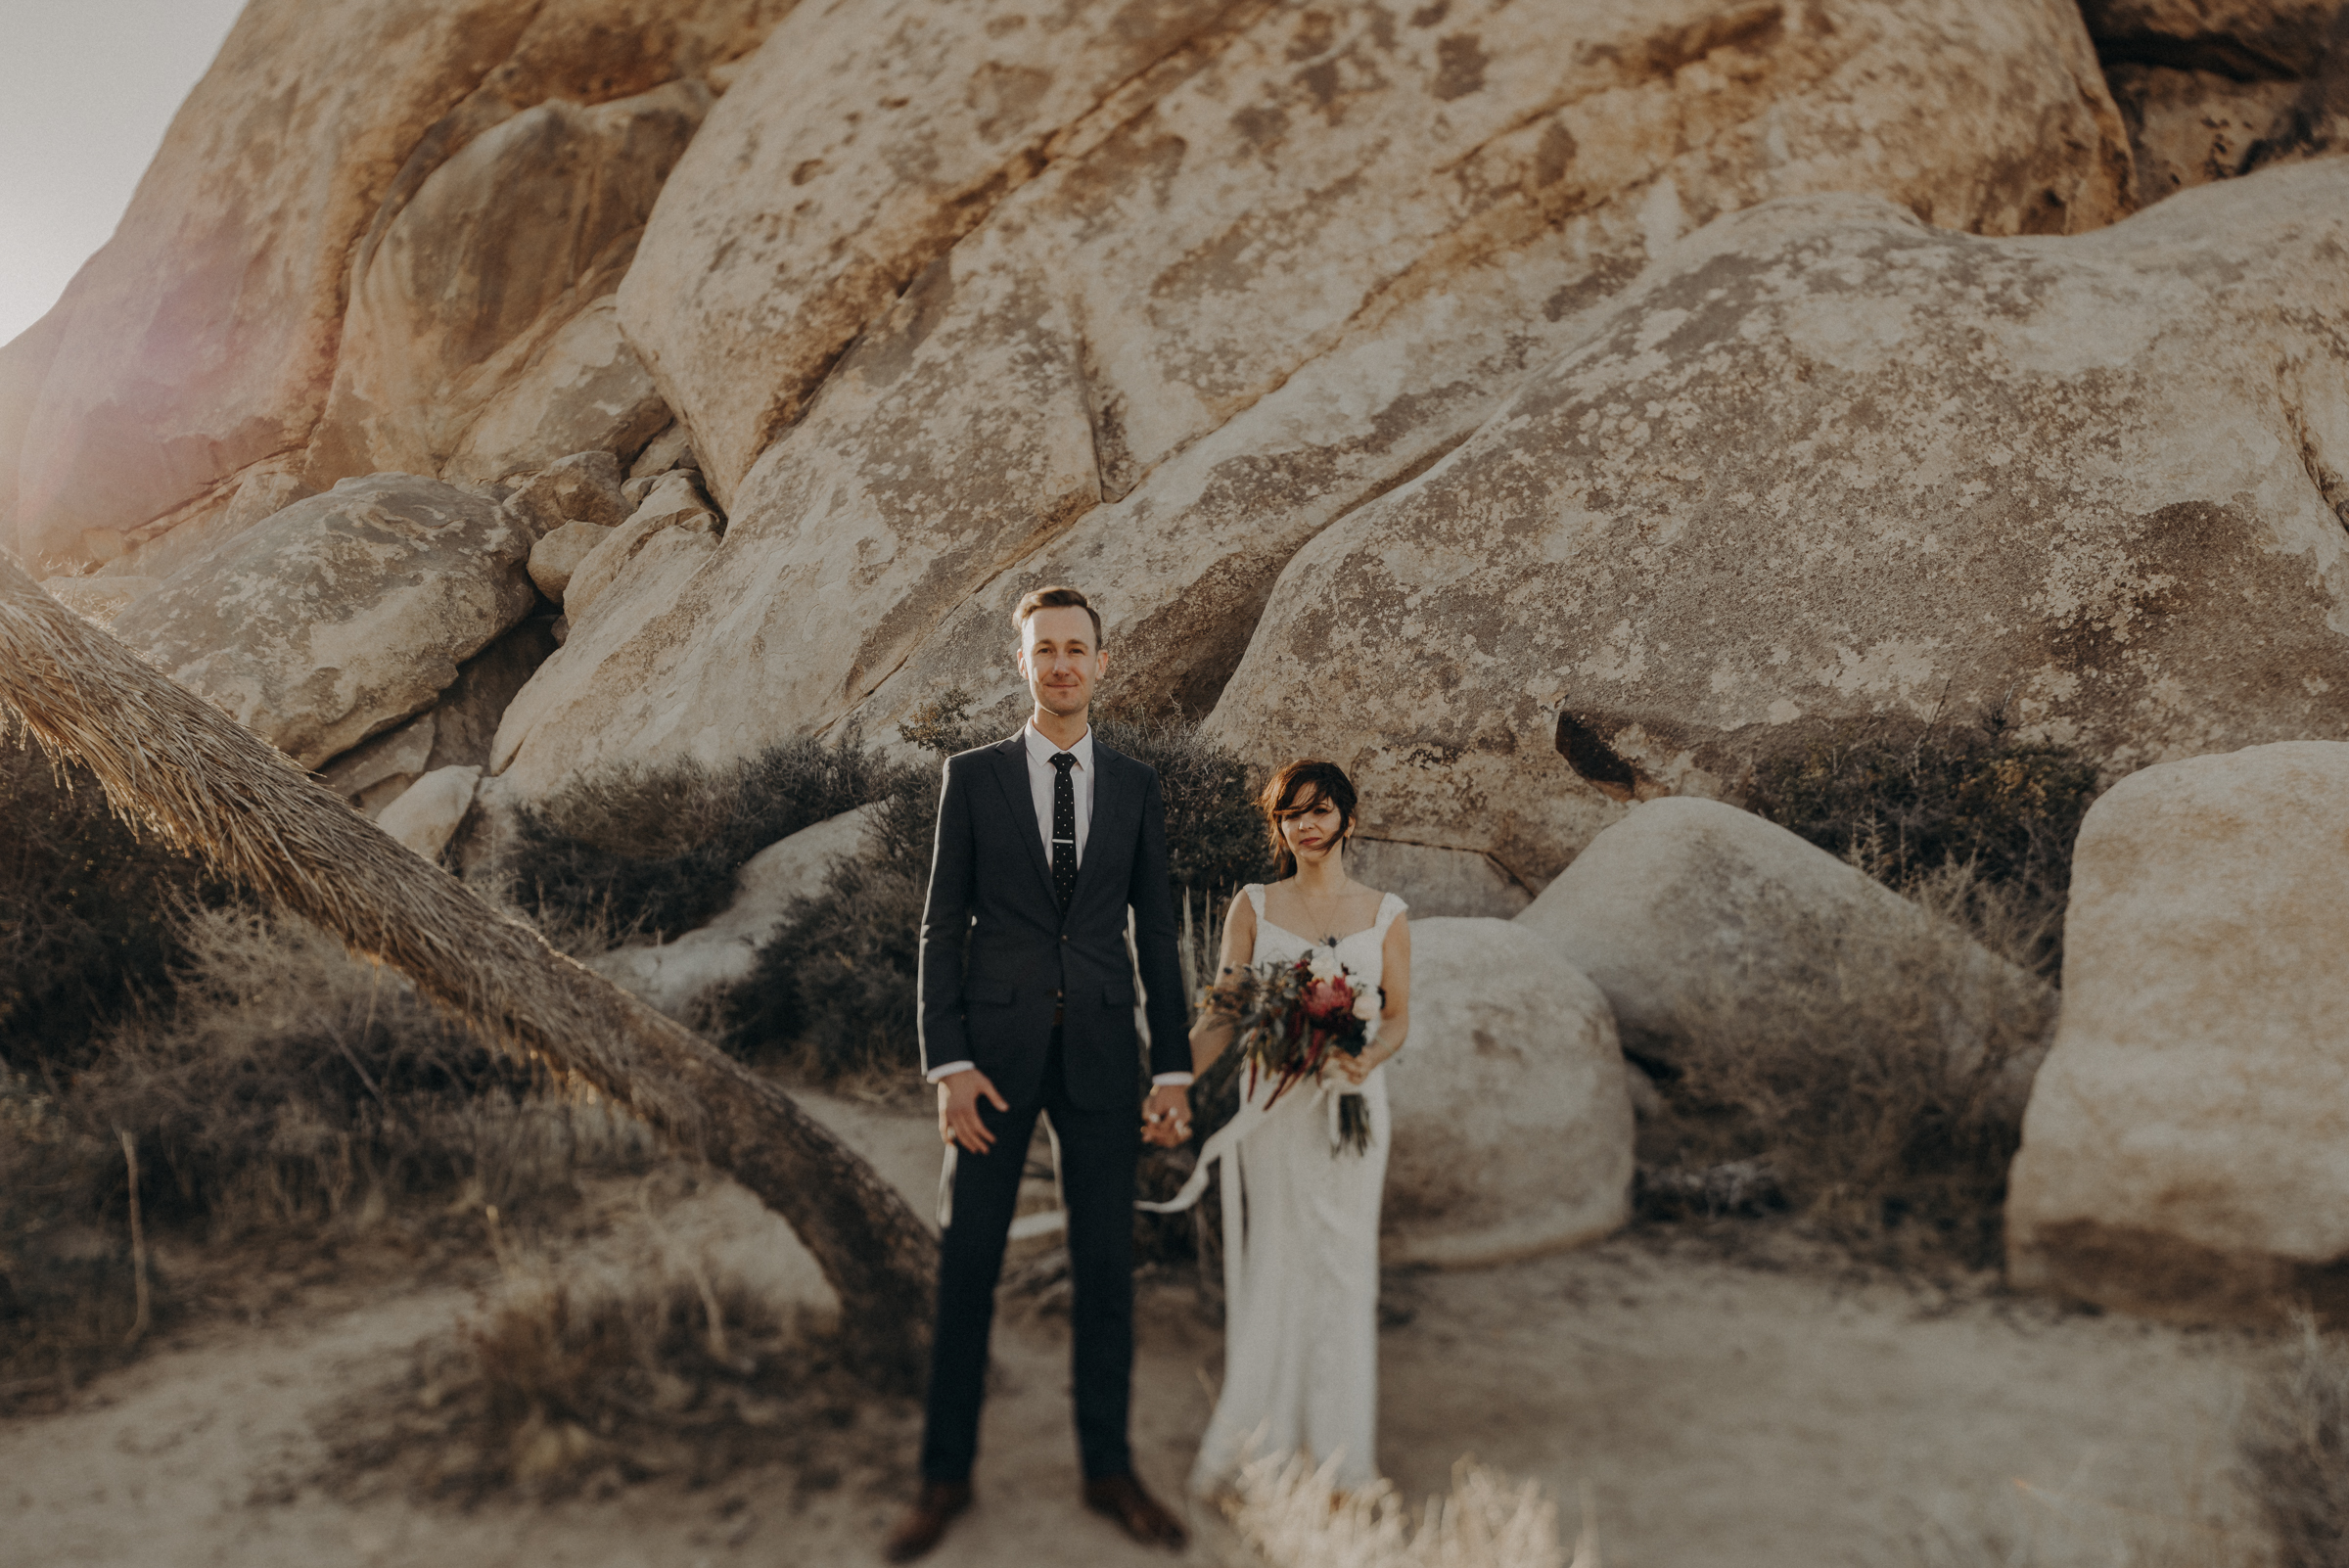 Joshua Tree Elopement - Los Angeles Wedding Photographers - IsaiahAndTaylor.com-055.jpg